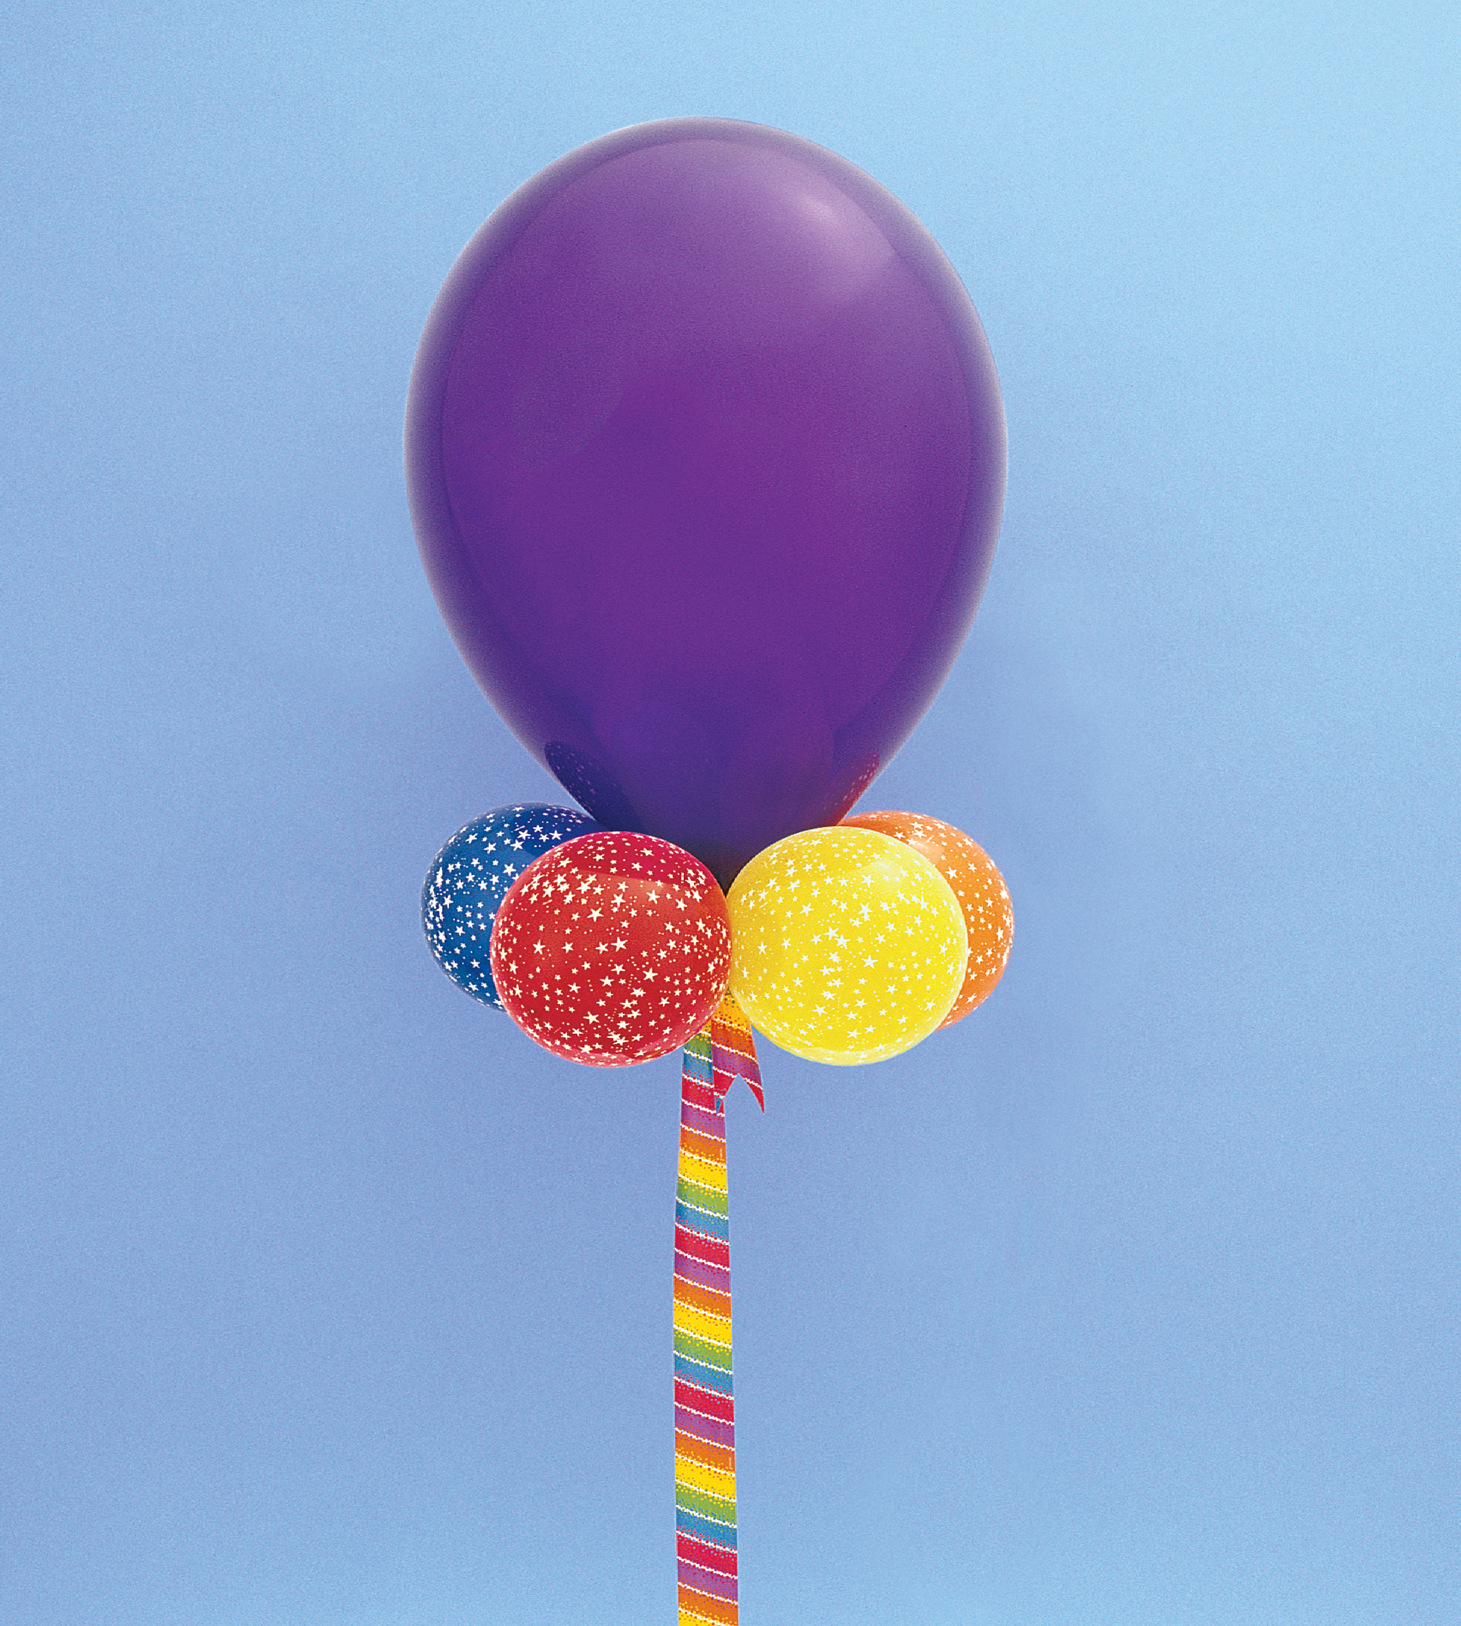 Balloons are often used as party d cor.